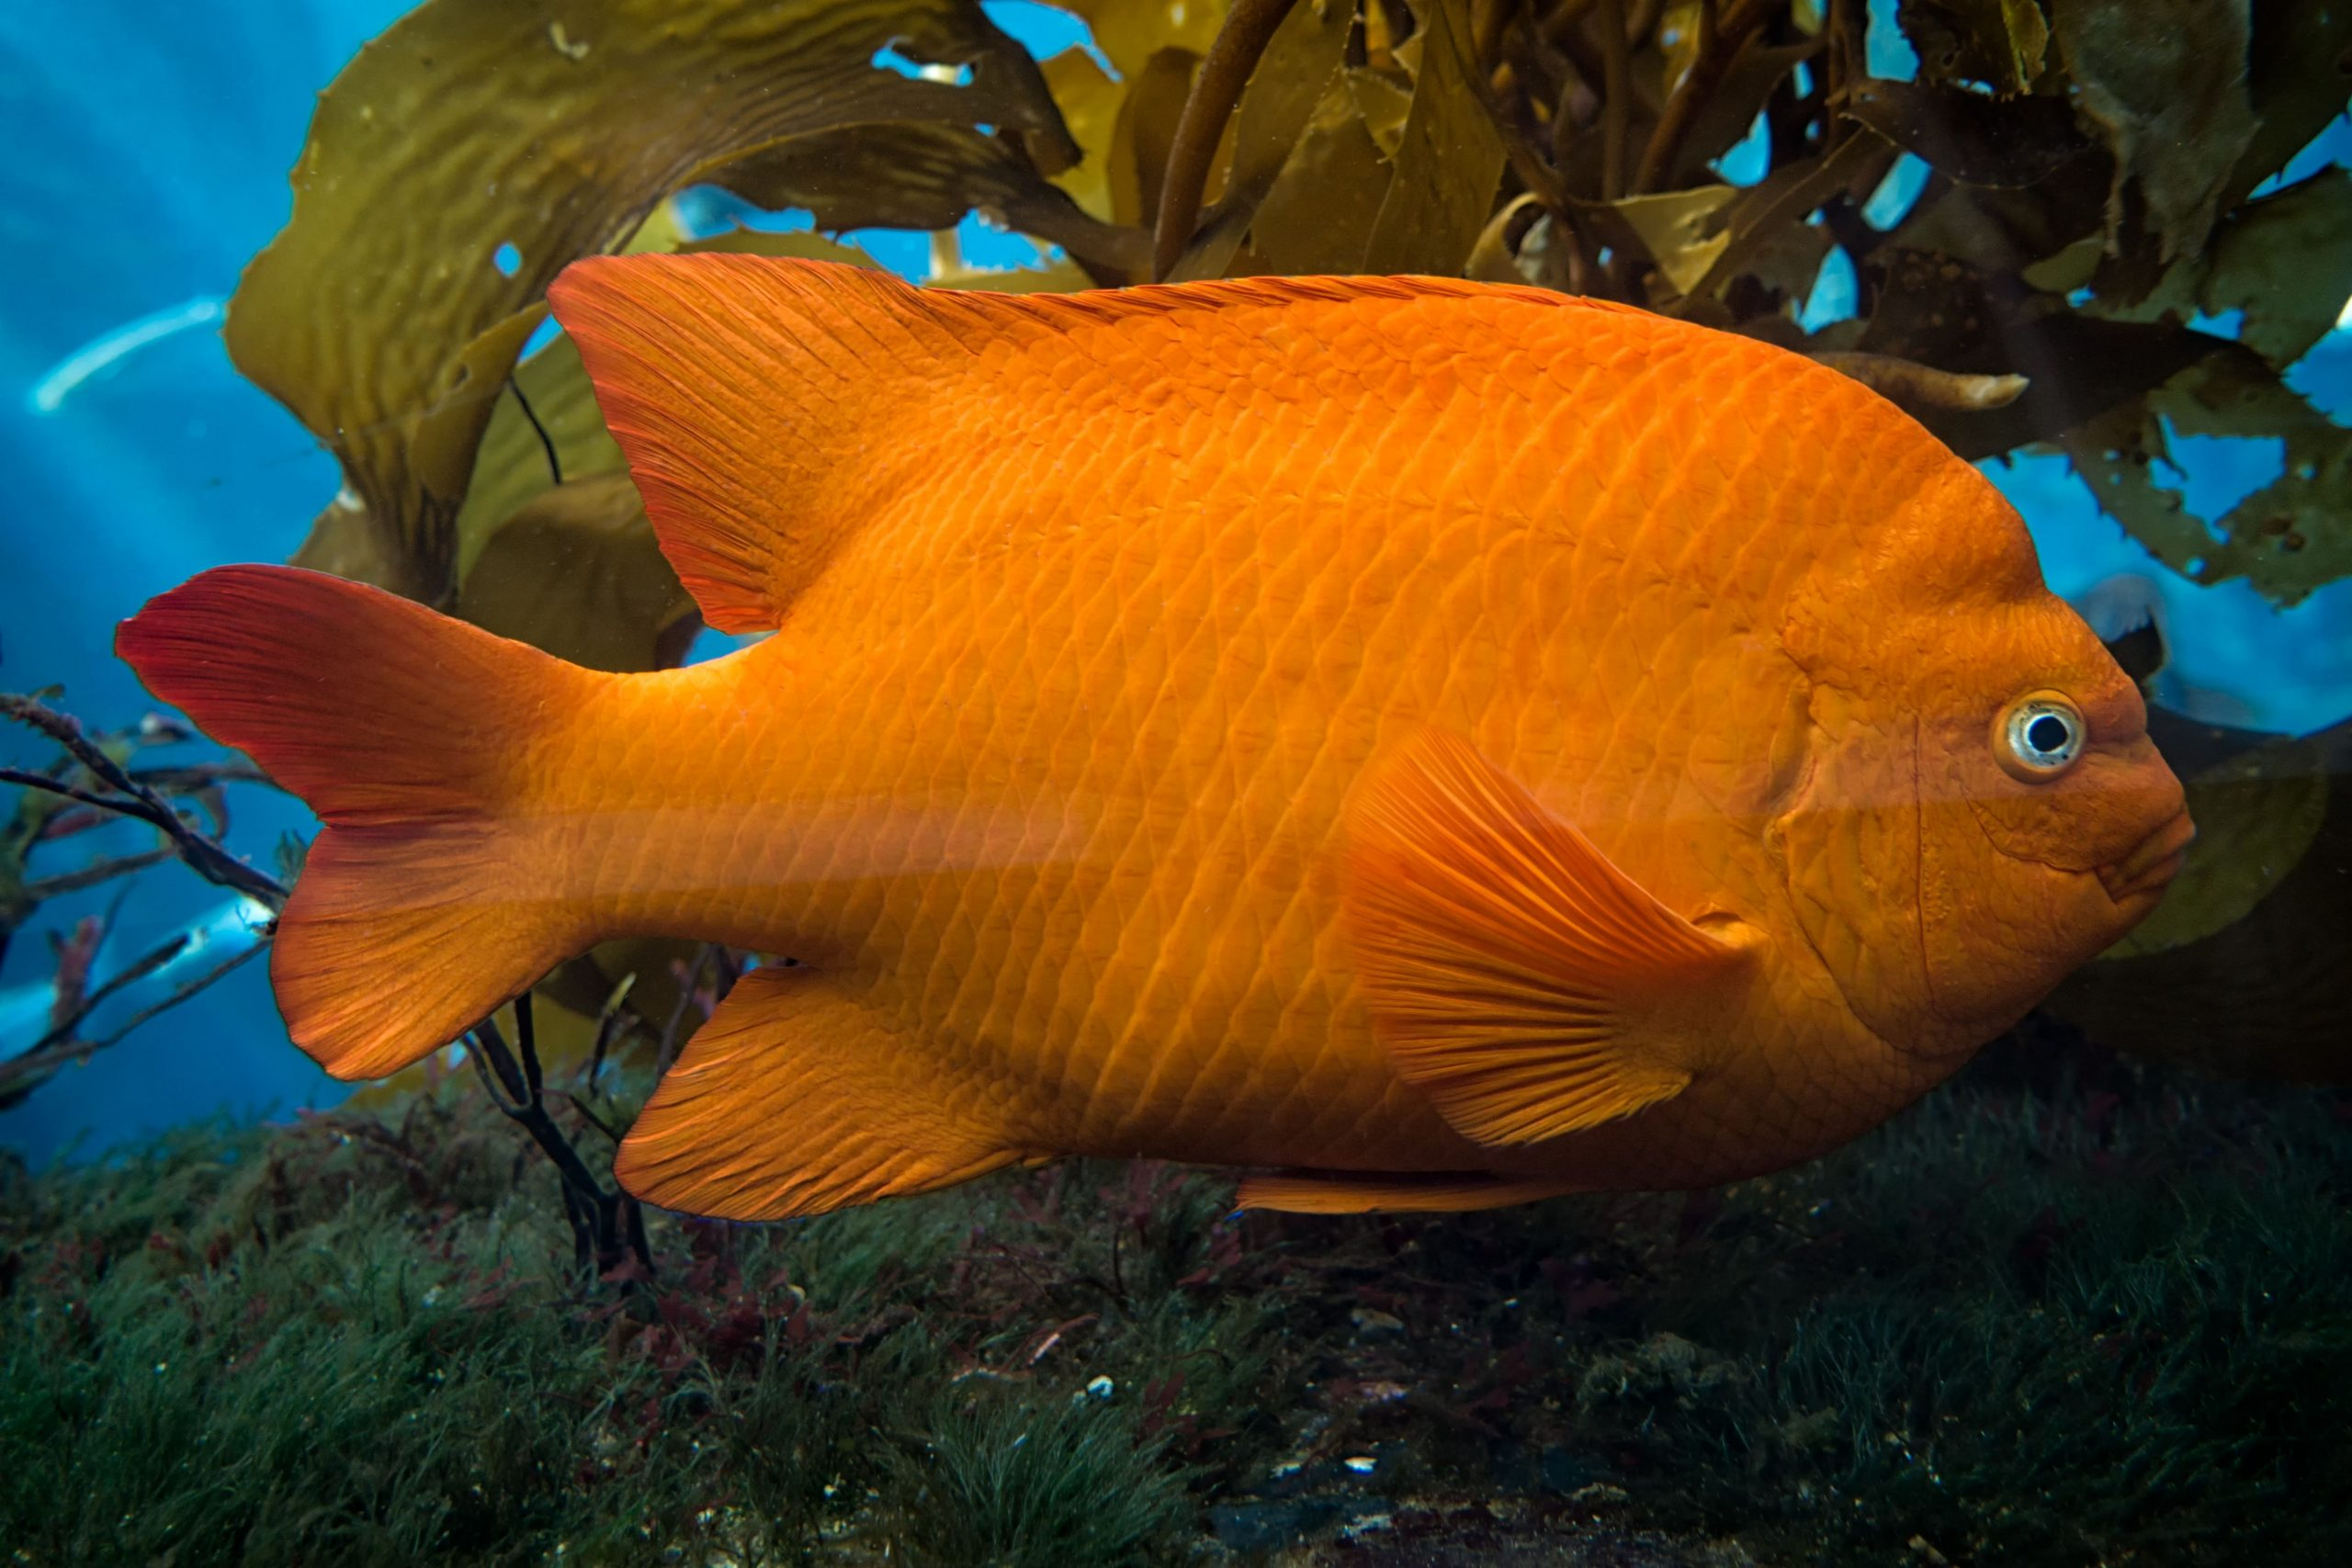 File:Big Orange Fish (9).jpg - Wikimedia Commons